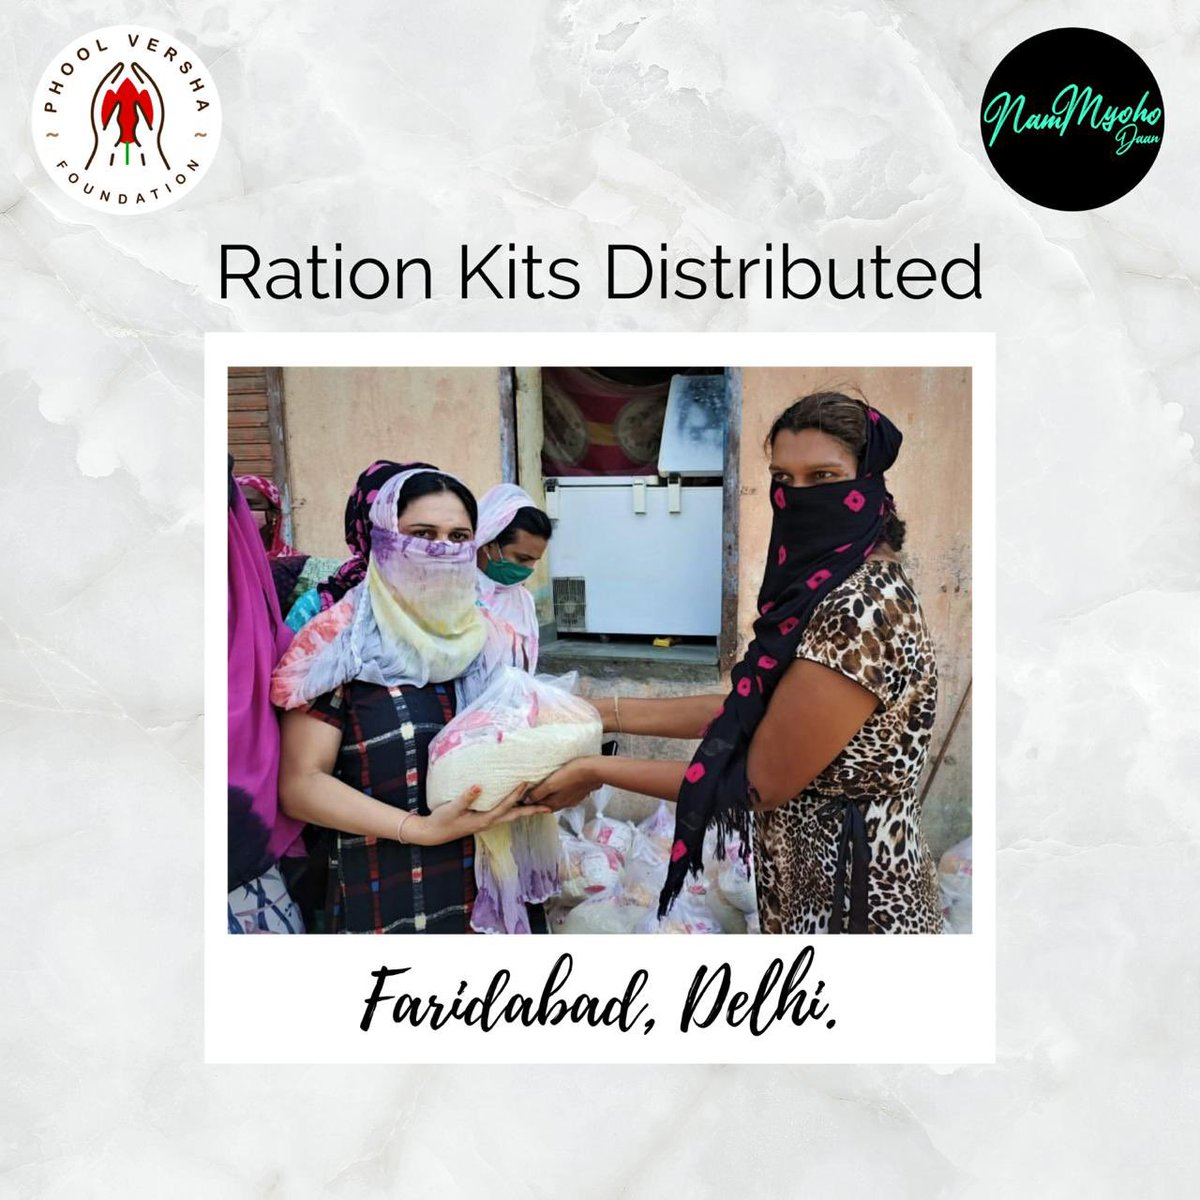 With business operations resuming slowly, many are yet to find a stable means to provide for their families. We have managed to help few with your support in Faridabad, Delhi. Many need your help more than ever. So, donate here and help make the difference.  #FeedTheHungry